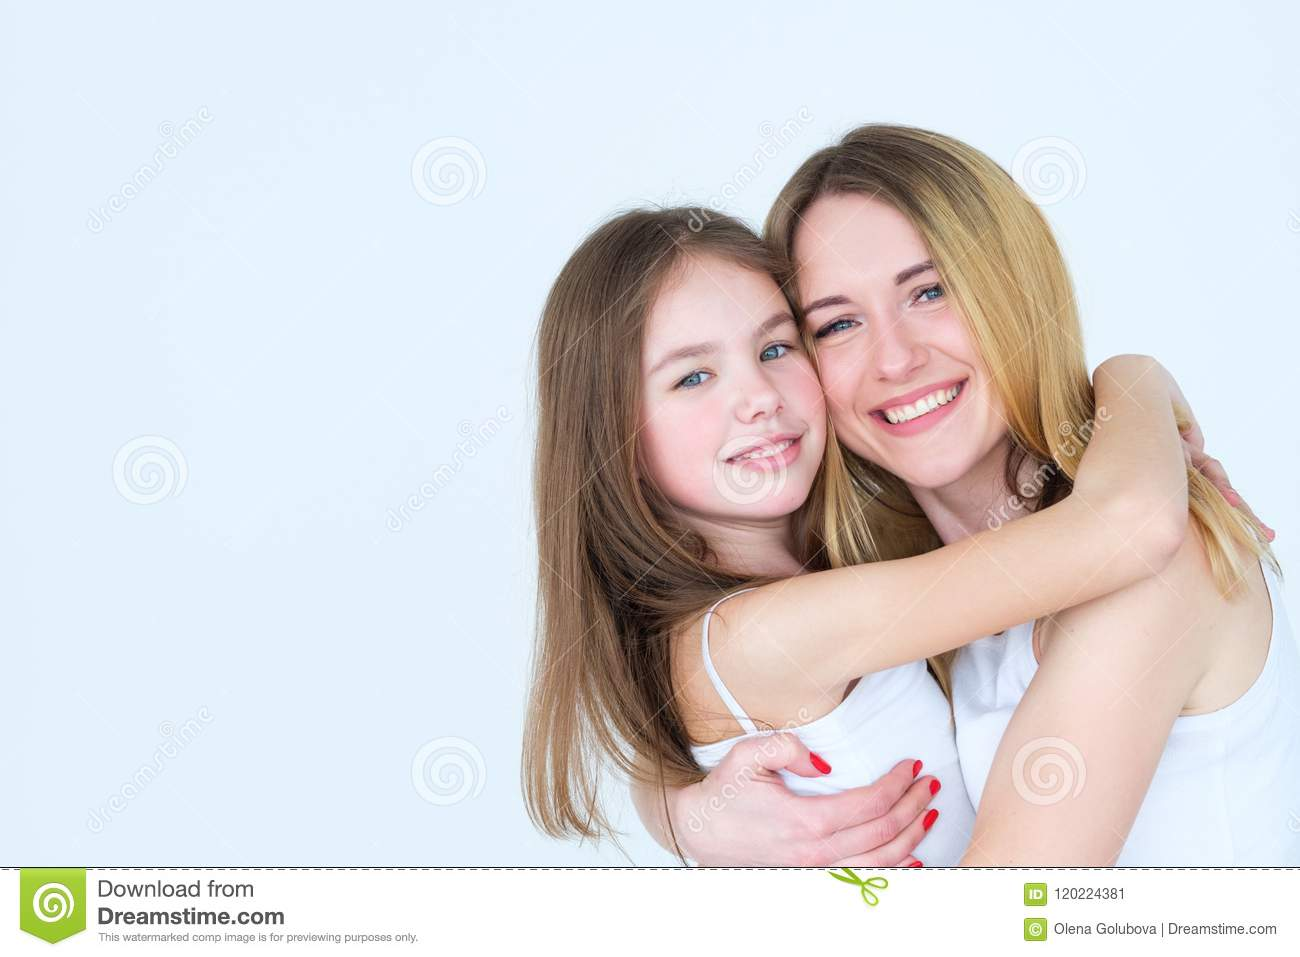 8c763cfb41 Mother and daughter friendship. loving emotion and feelings expression.  tight family hugs.